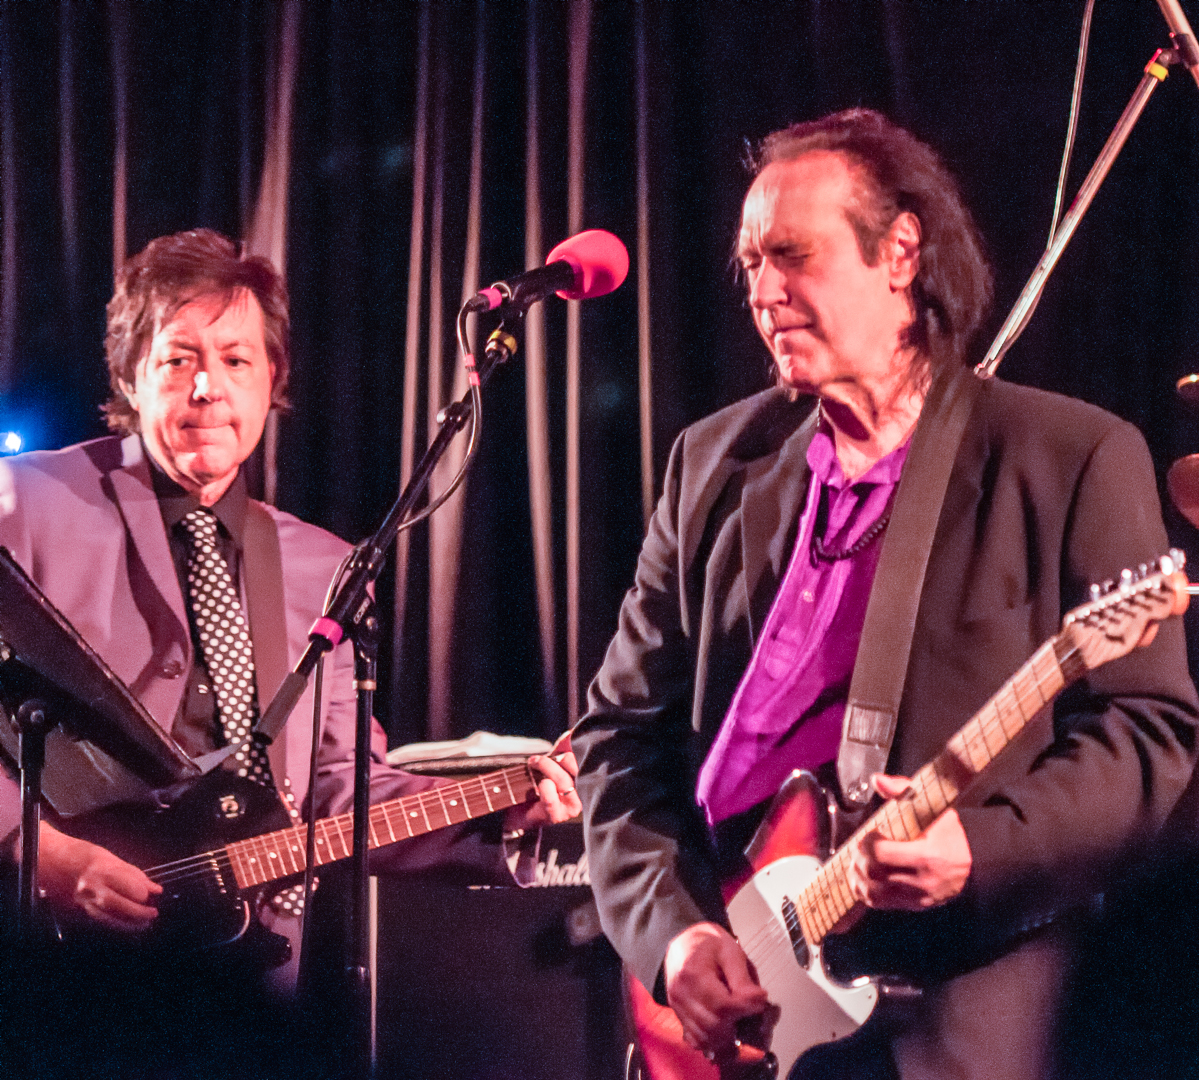 Dave davies and jonathan lea at the coach house in san juan capistrano